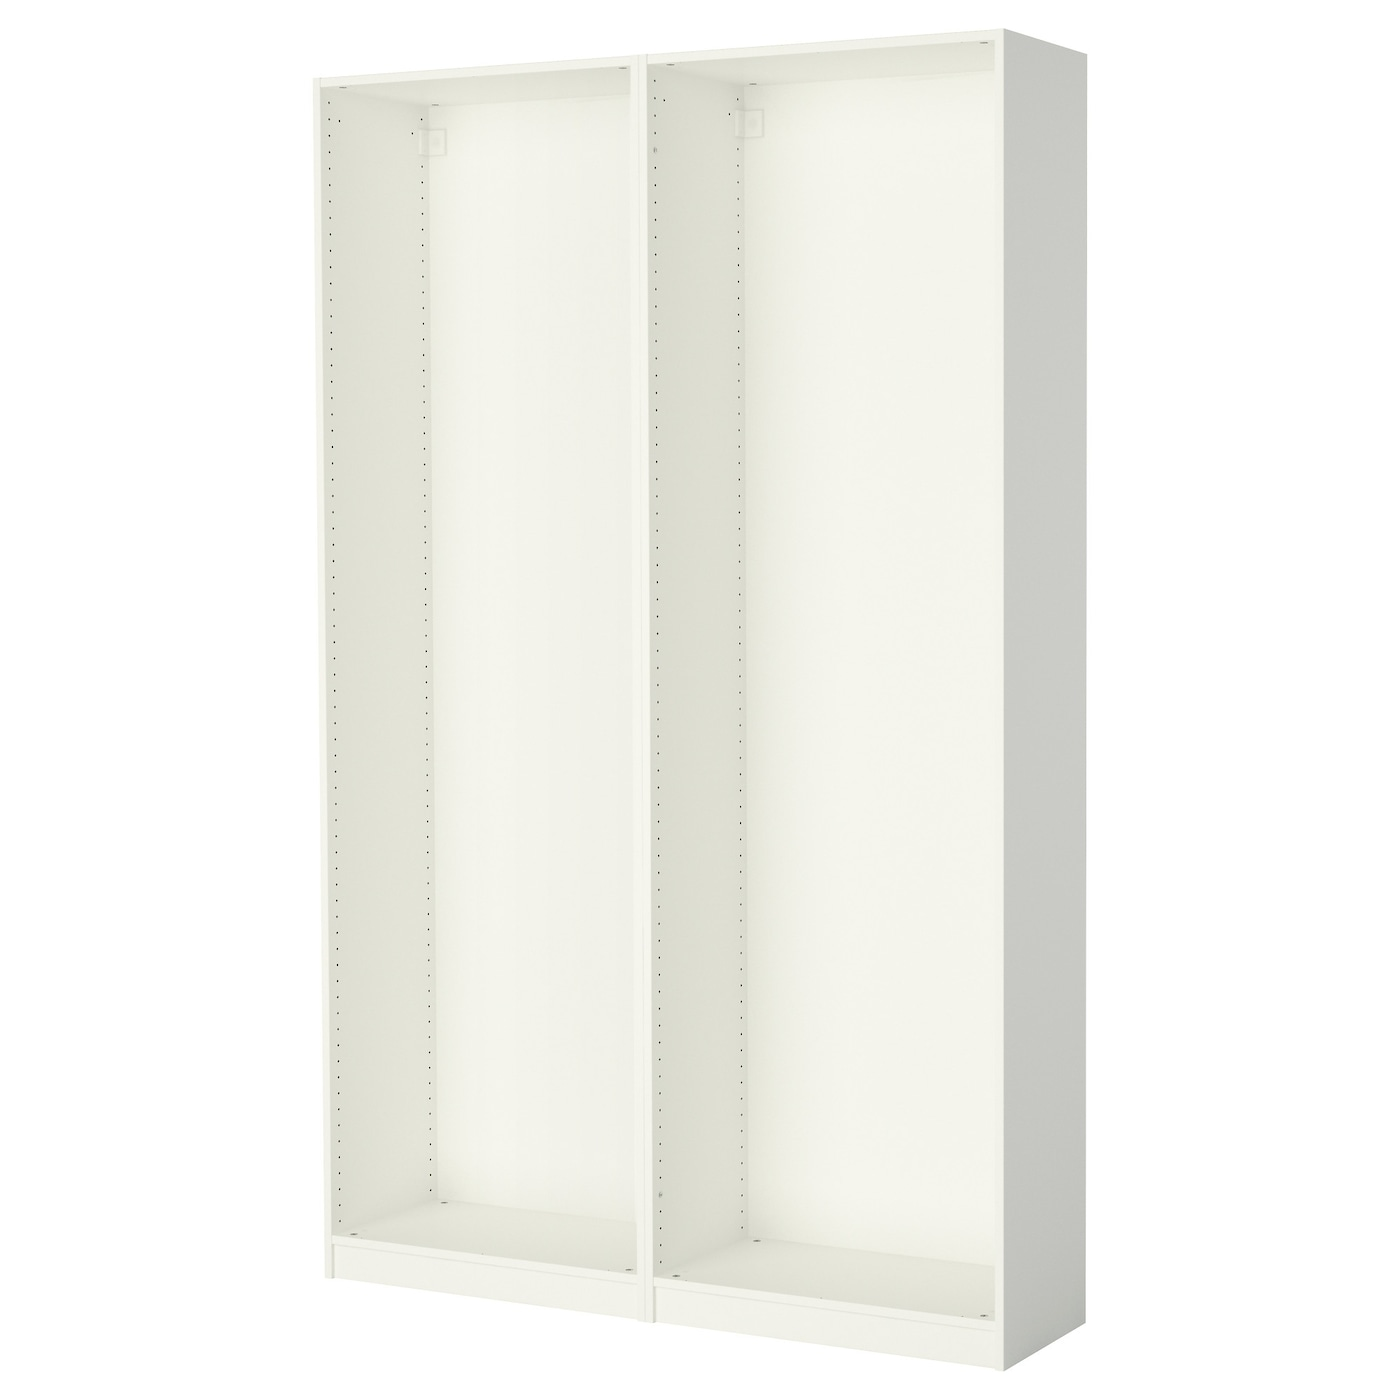 pax 2 caissons armoire blanc 150x35x236 cm ikea. Black Bedroom Furniture Sets. Home Design Ideas